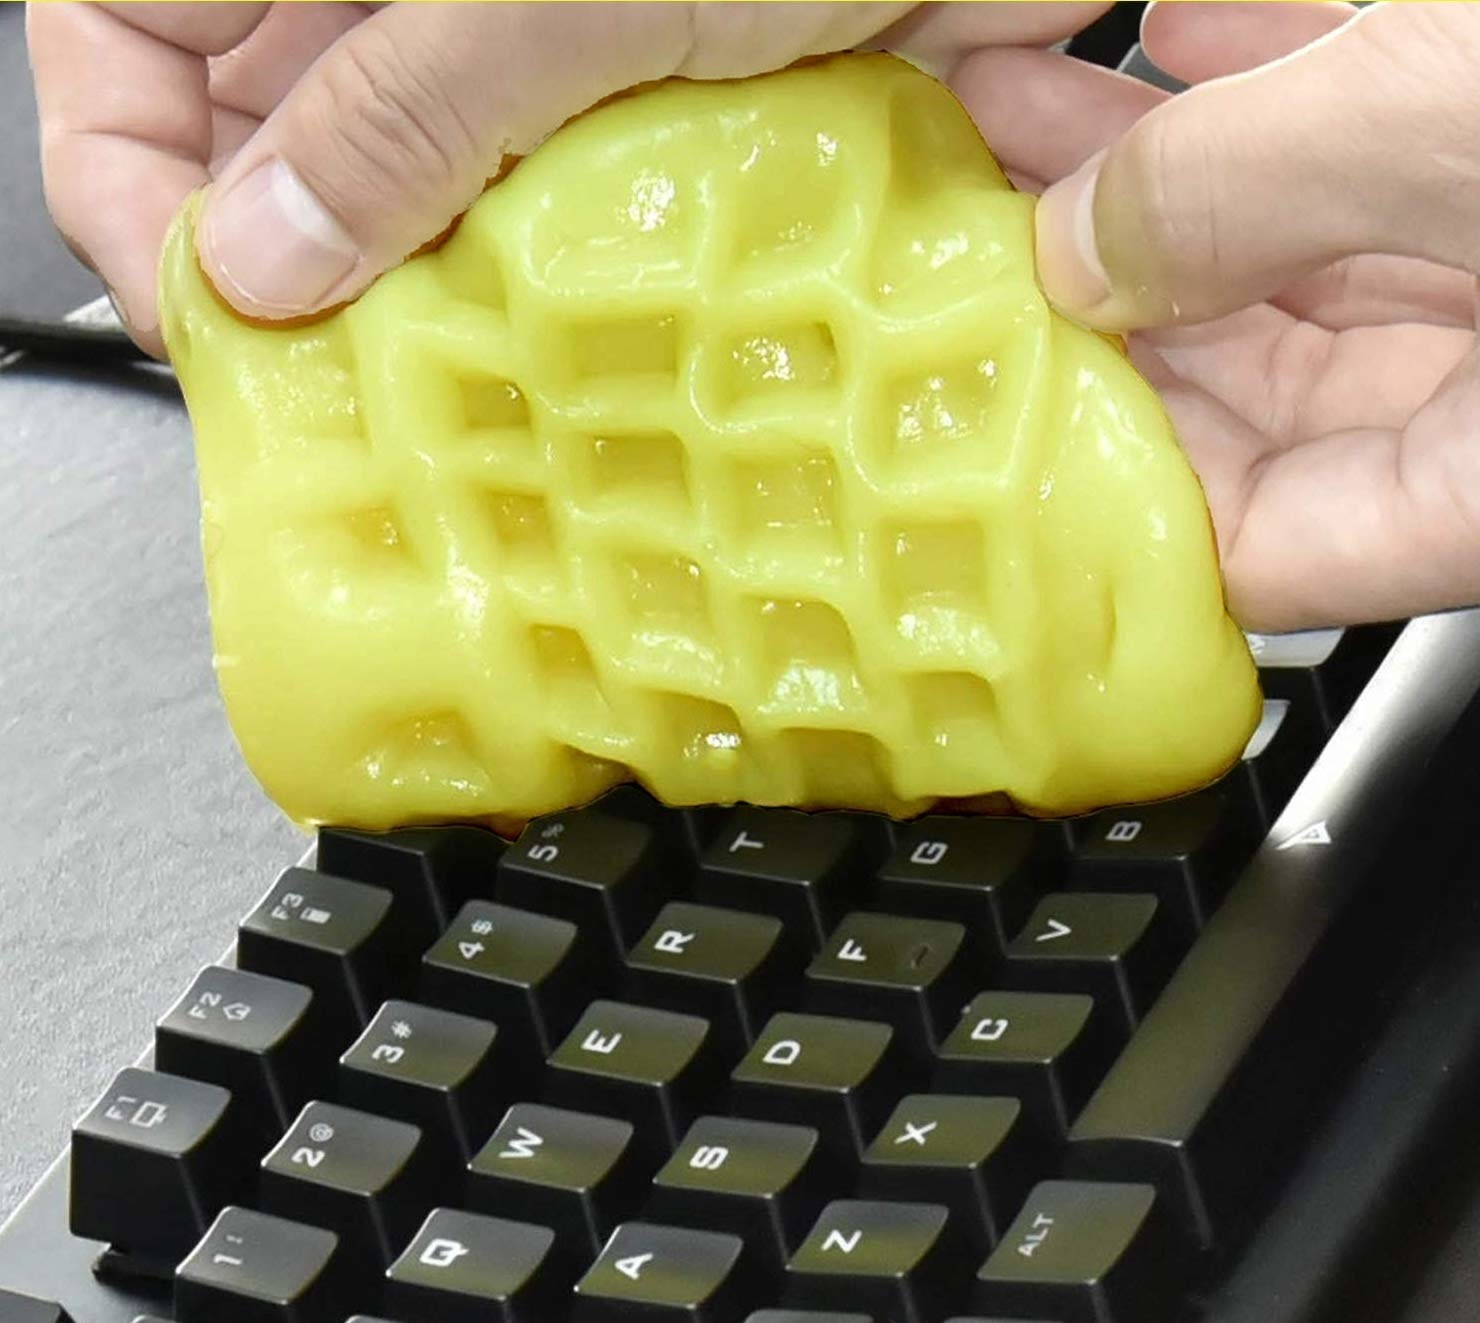 A close up of a person using the goo on a keyboard